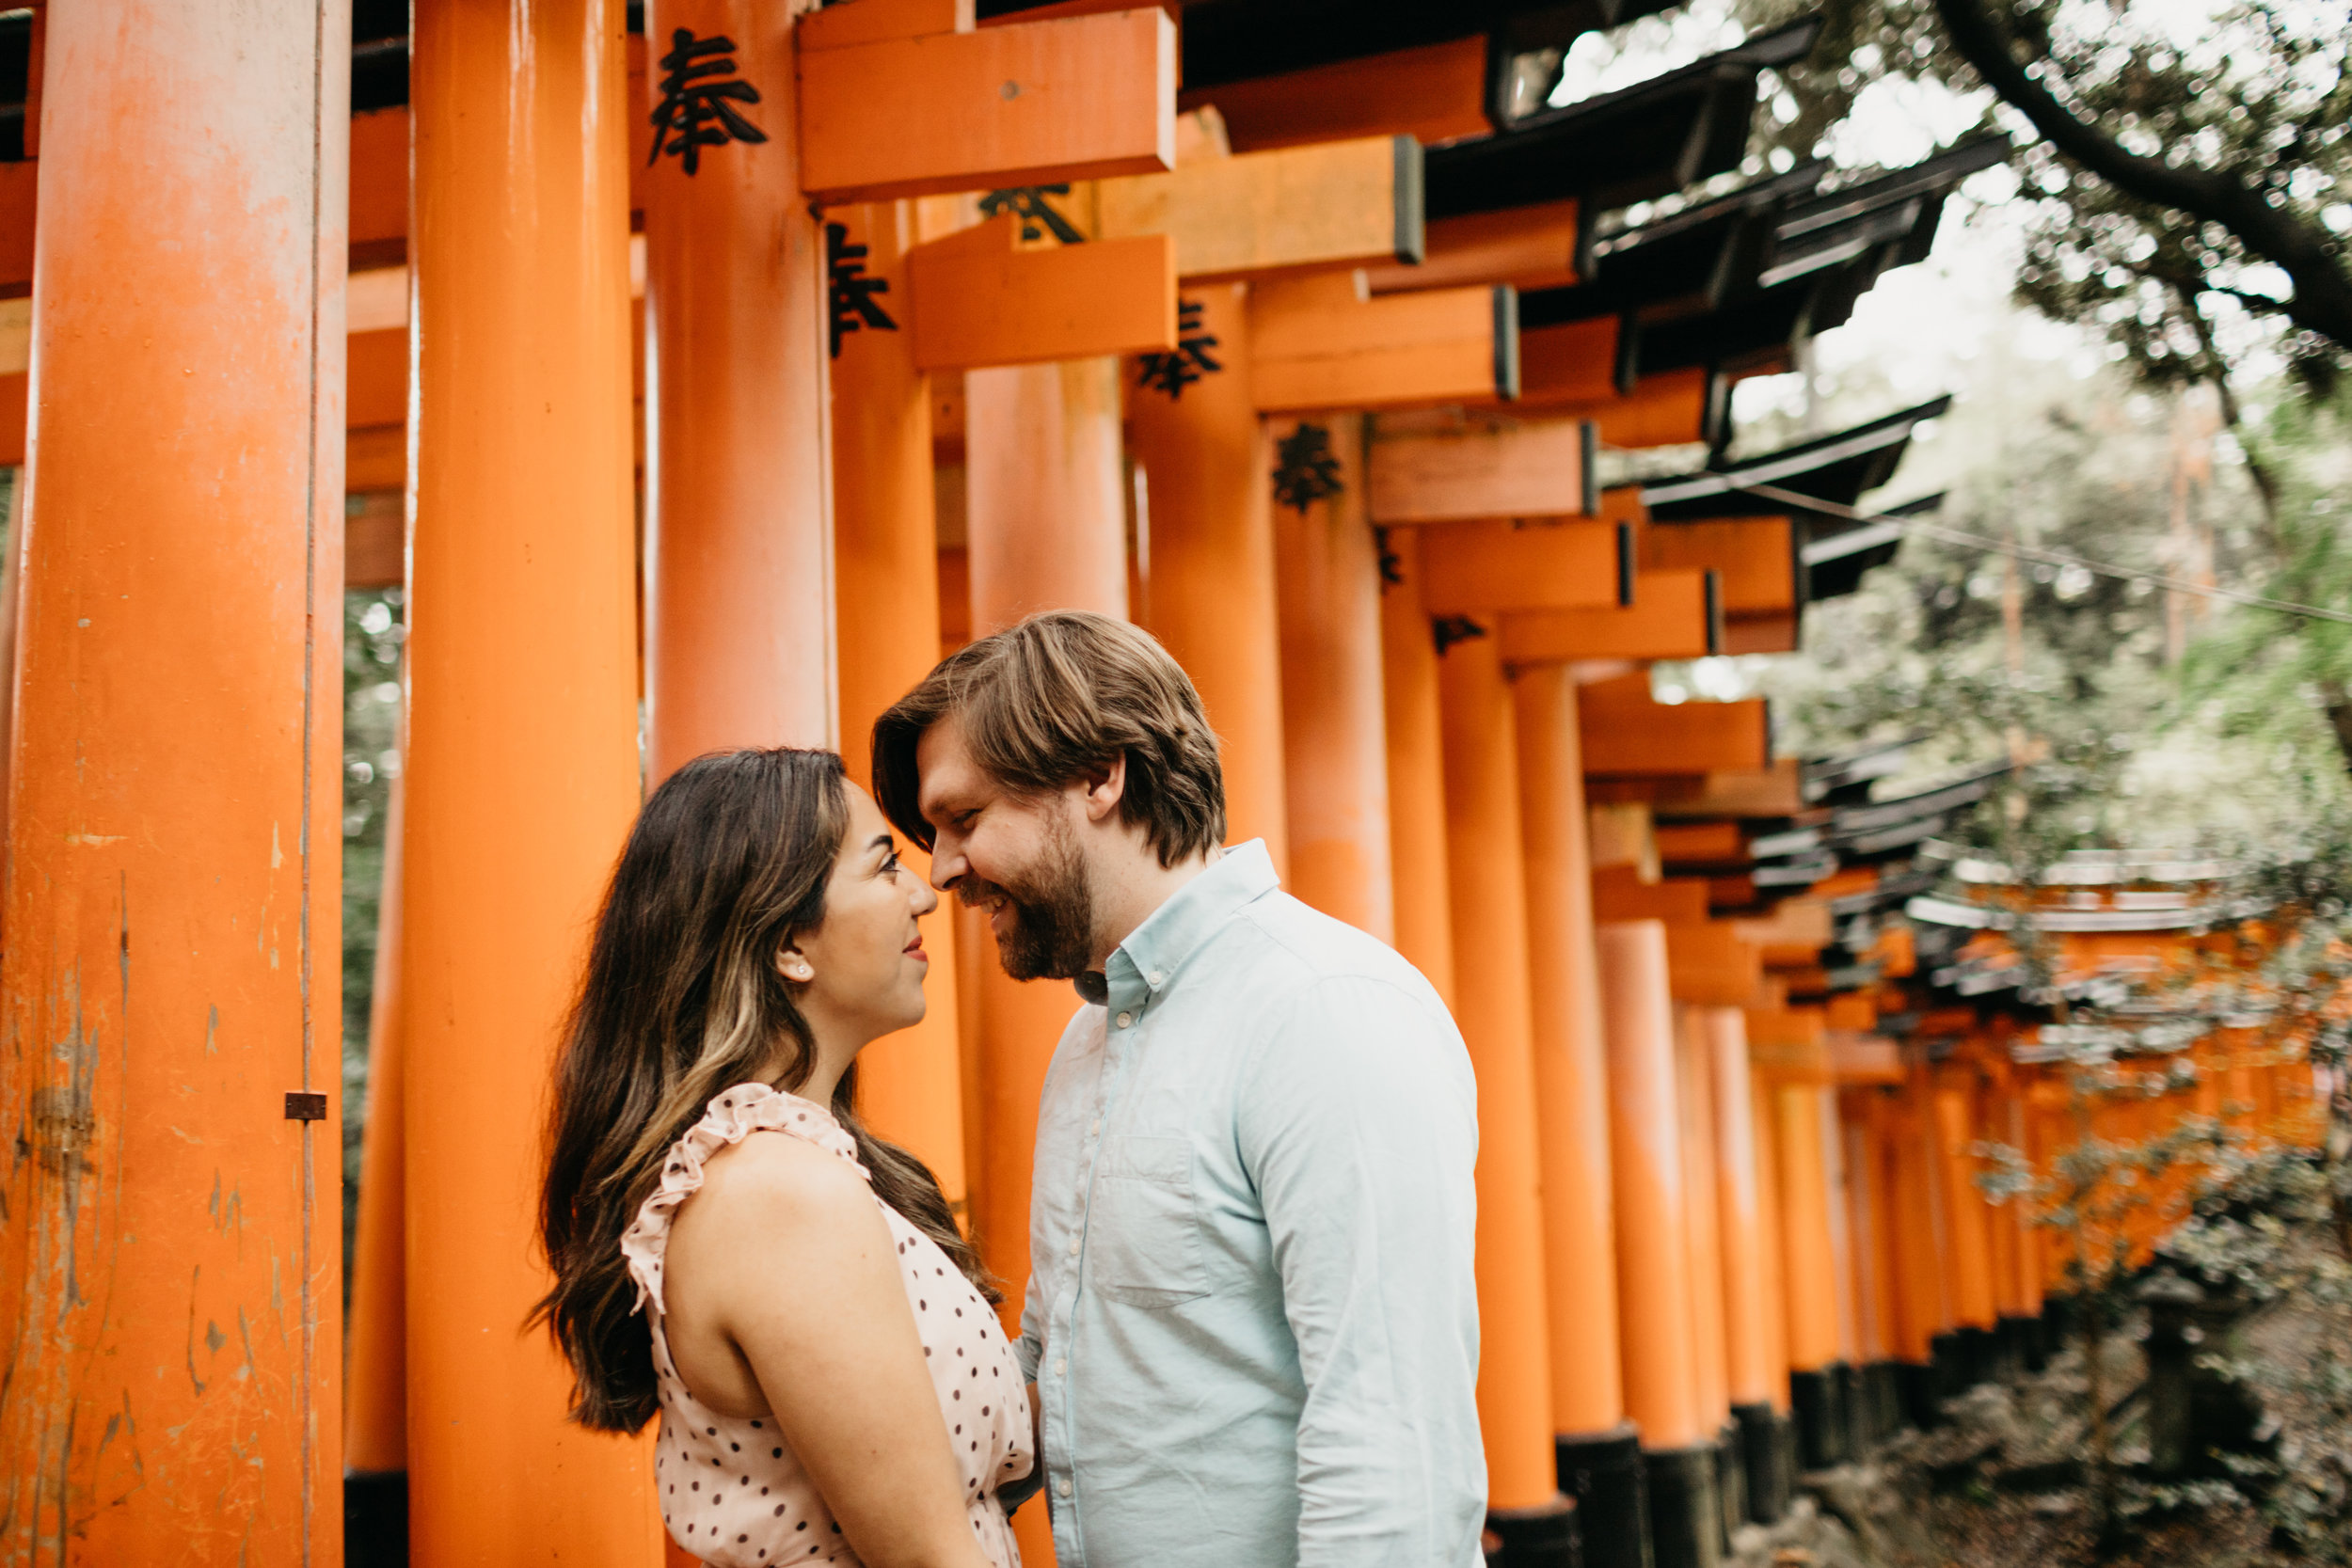 fushimi_inari_shrine_kyoto_couples_session_pictures_by_samantha_look-2.jpg